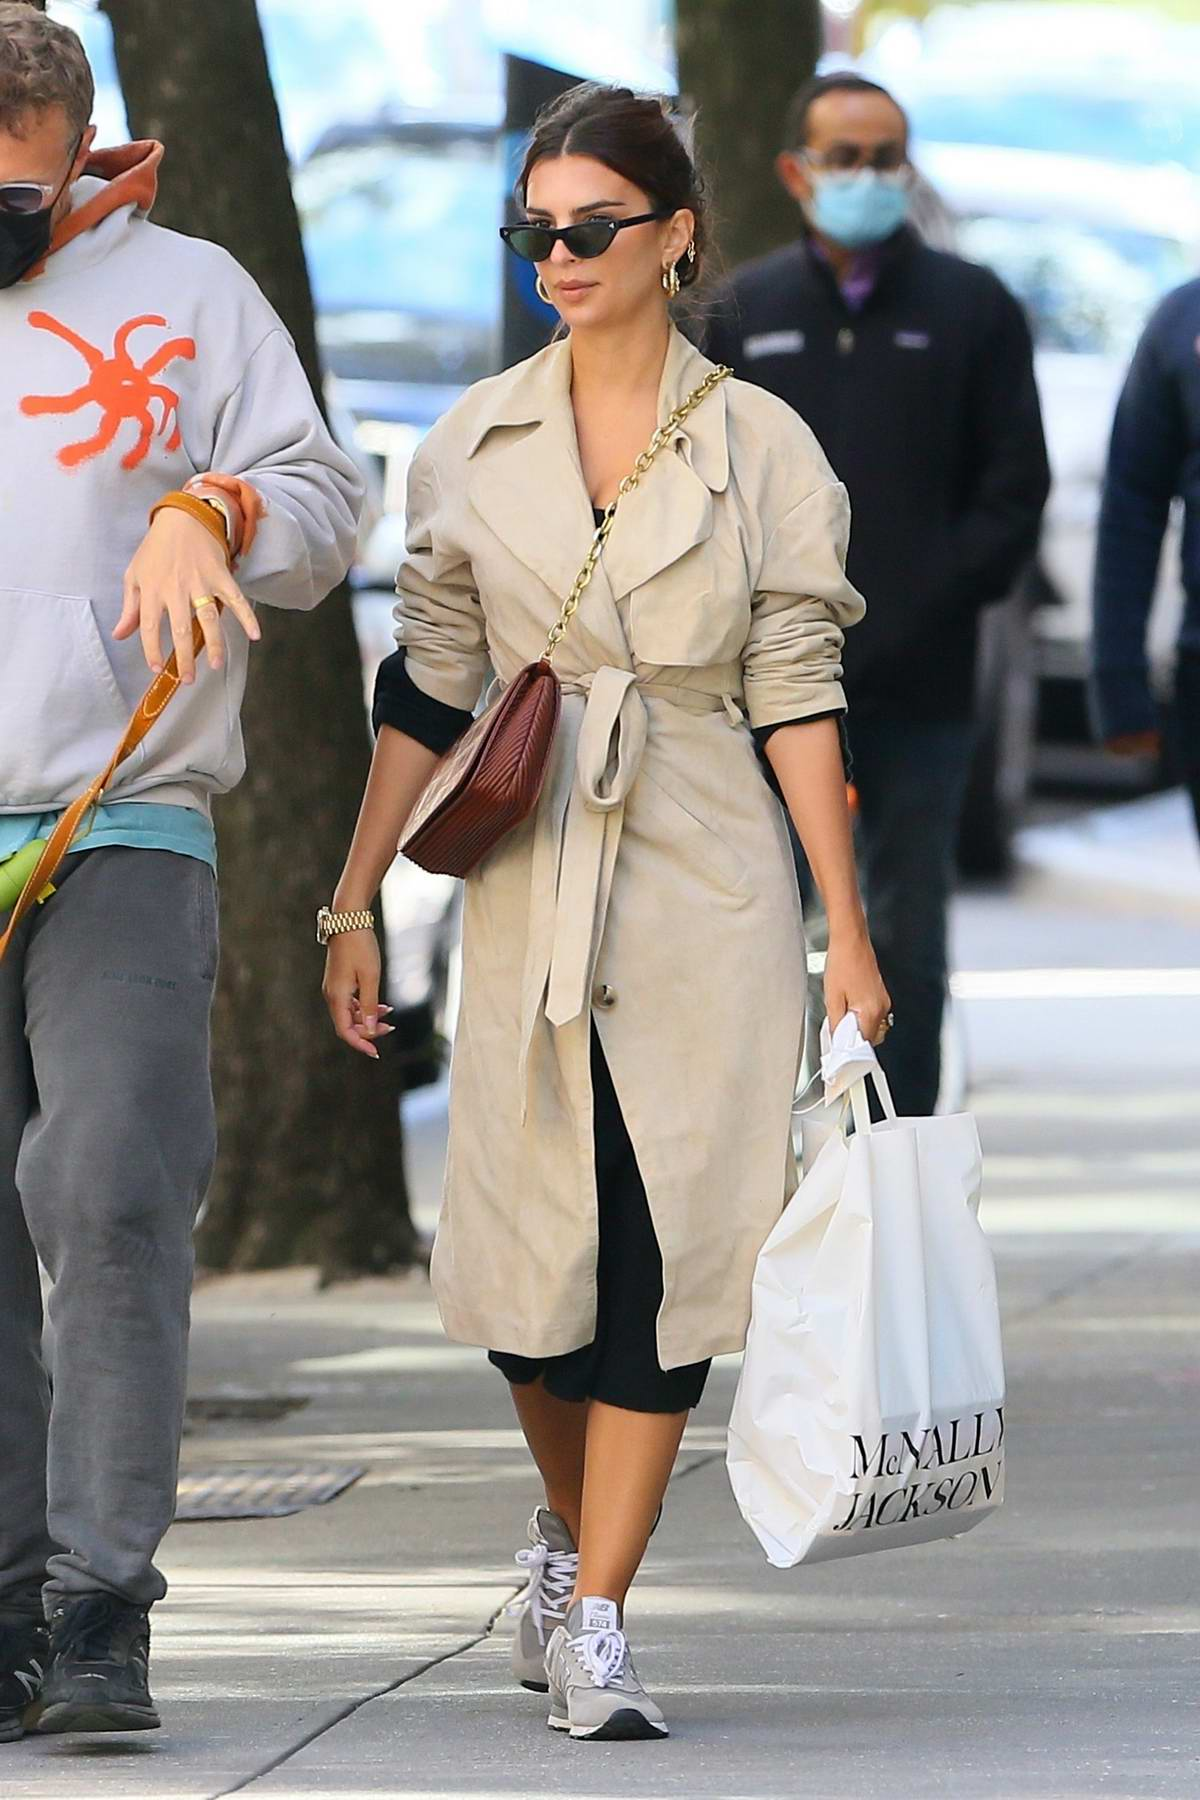 Emily Ratajkowski steps out to lunch with husband Sebastian Bear-McClard in New York City